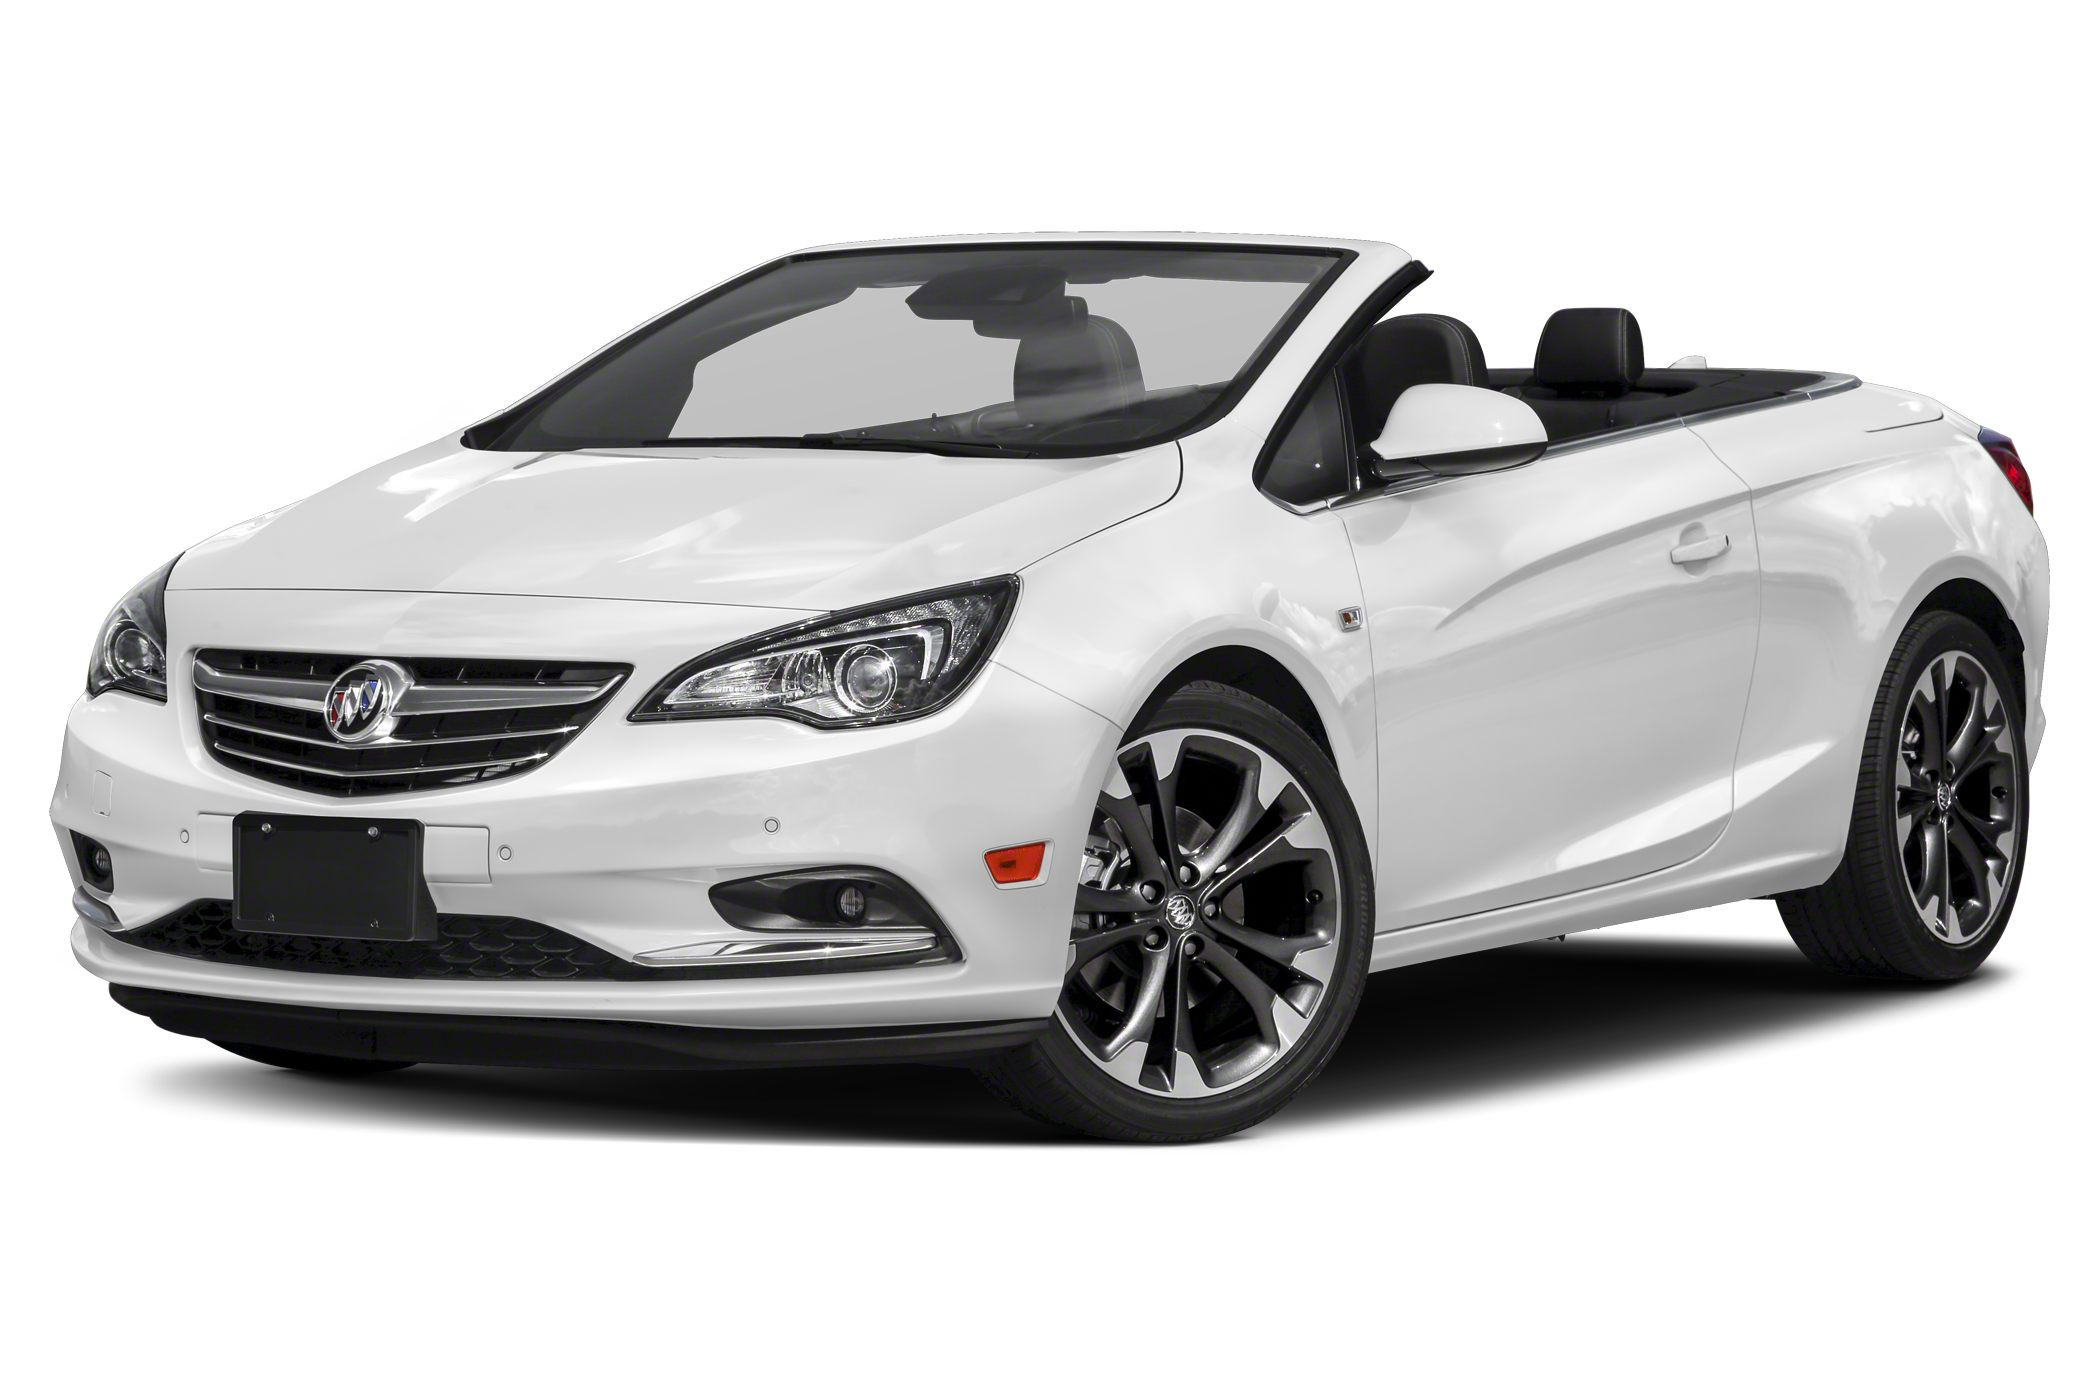 2019 Buick Cascada Crash Test Ratings 2021 Buick Cascada Features, Gas Type, Hp